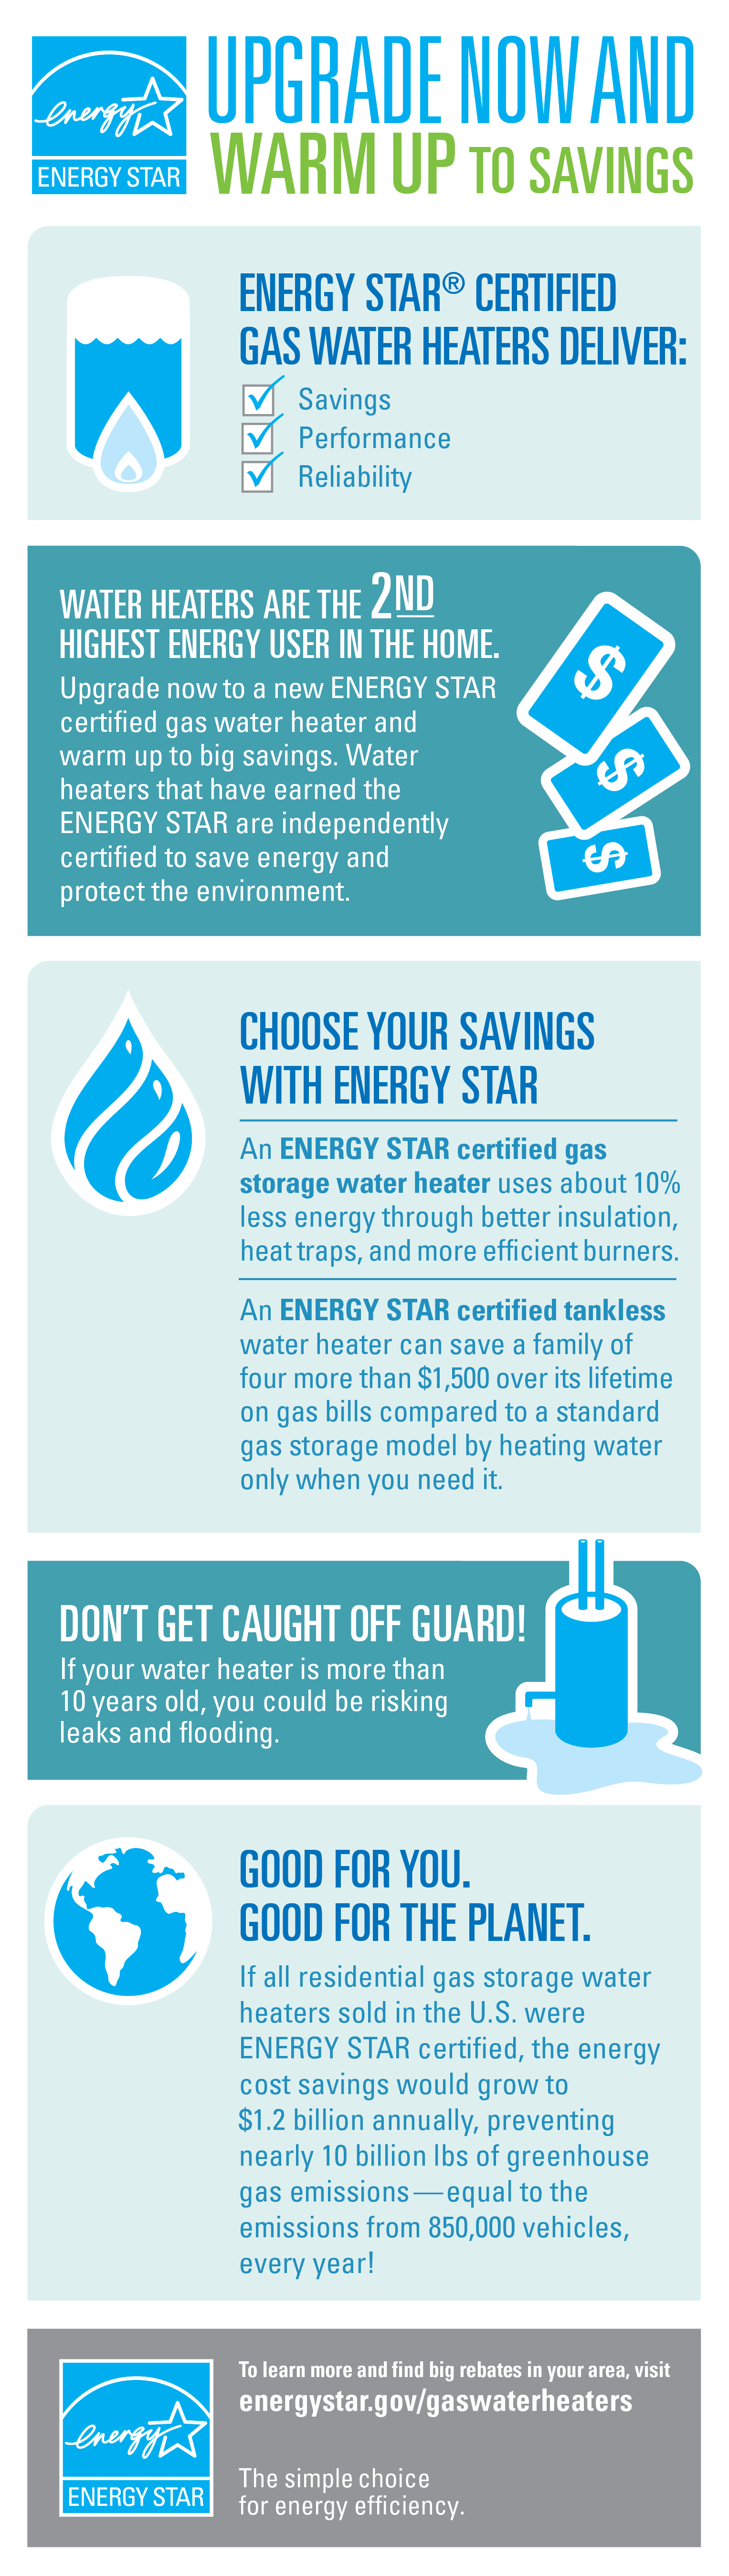 energy star gas water heater infographic png 468 kb